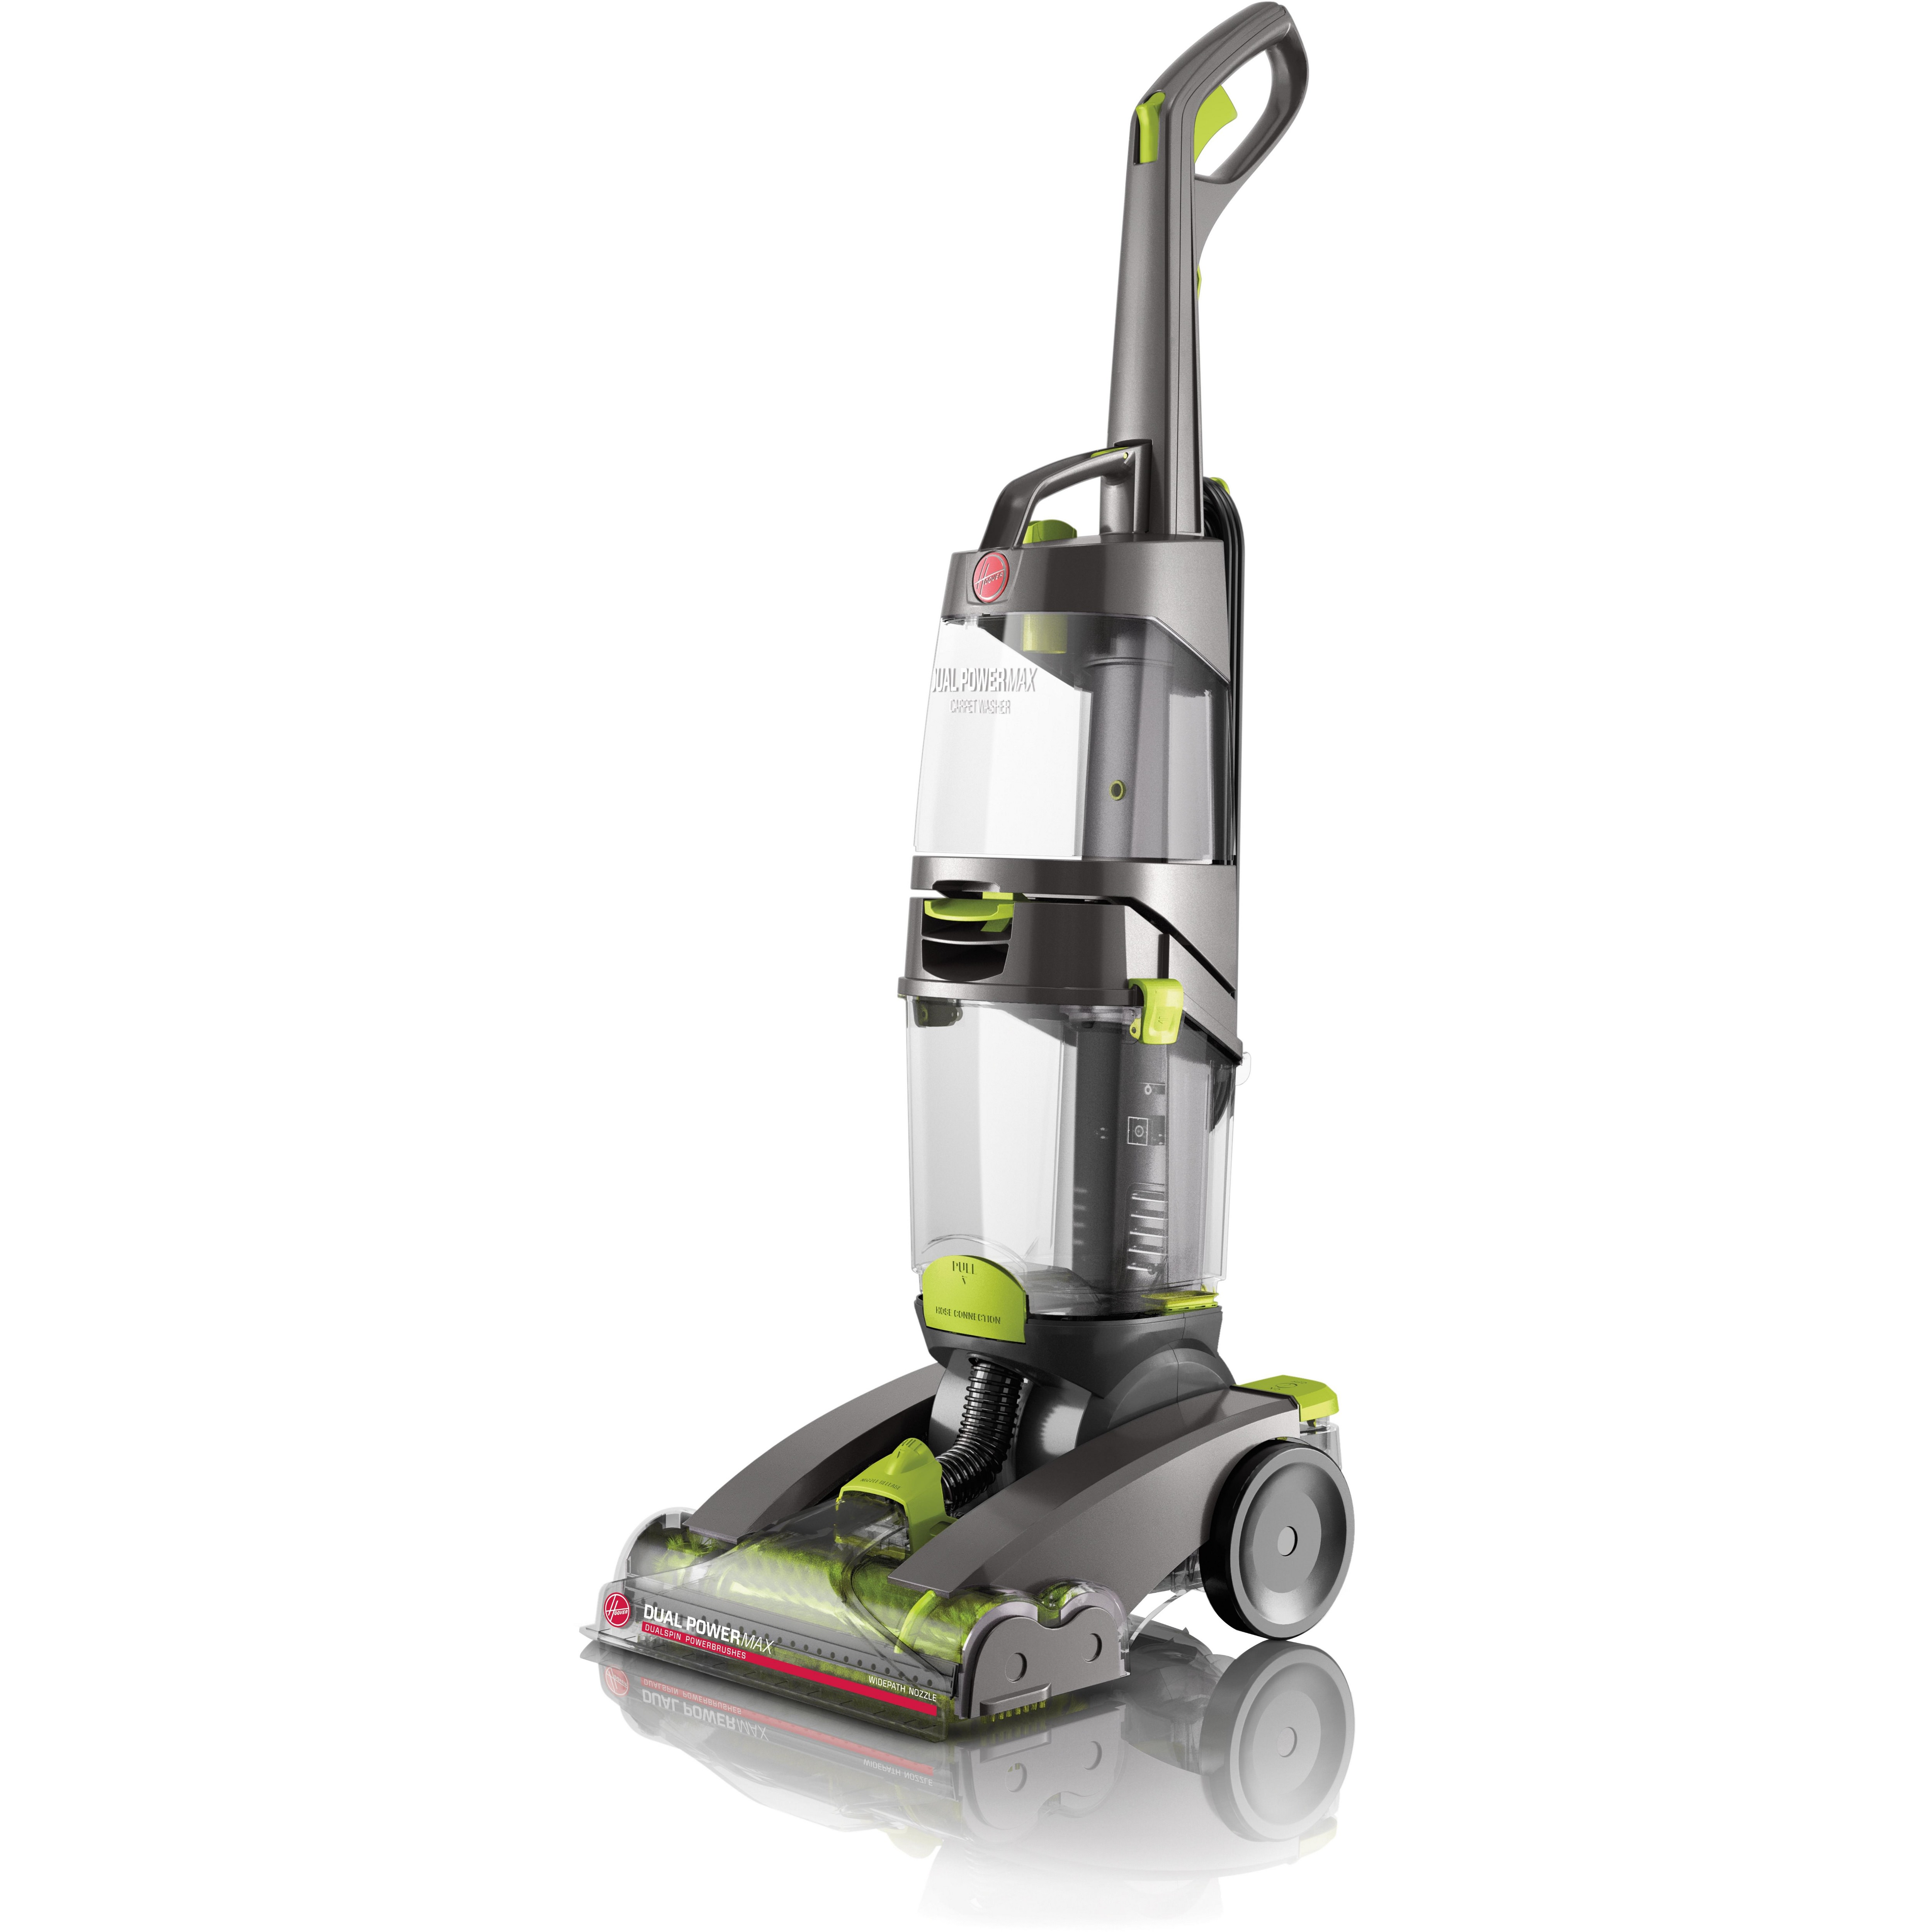 Hoover Fh51000 Dual Power Max Upright Carpet Cleaner Walmart Com